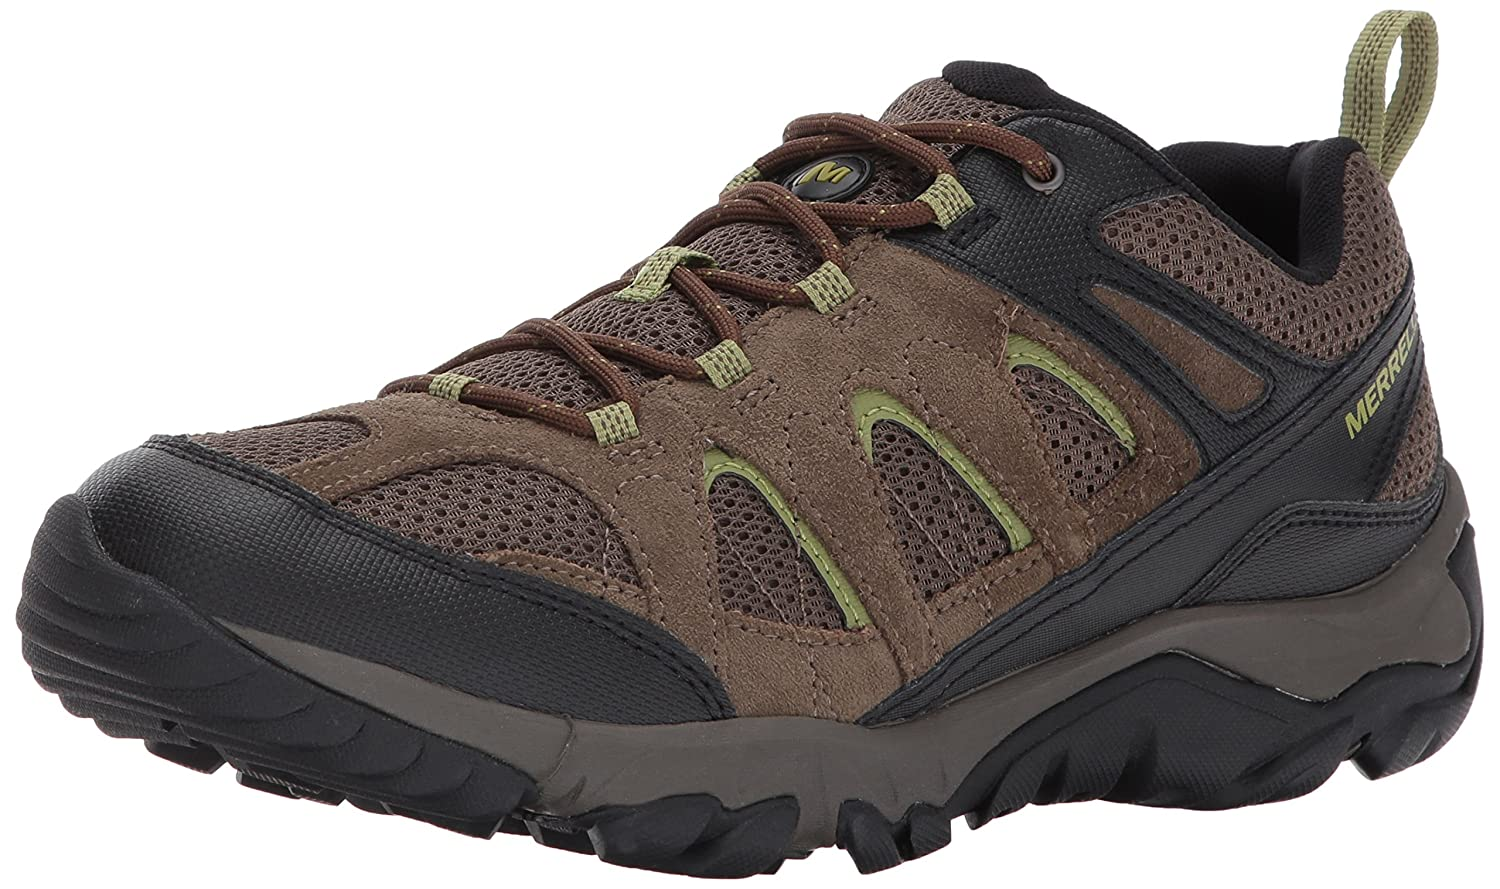 Merrell Women's Outmost Vent Hiking Boot B01NBKQE8I 10 D(M) US|Boulder/Brown1